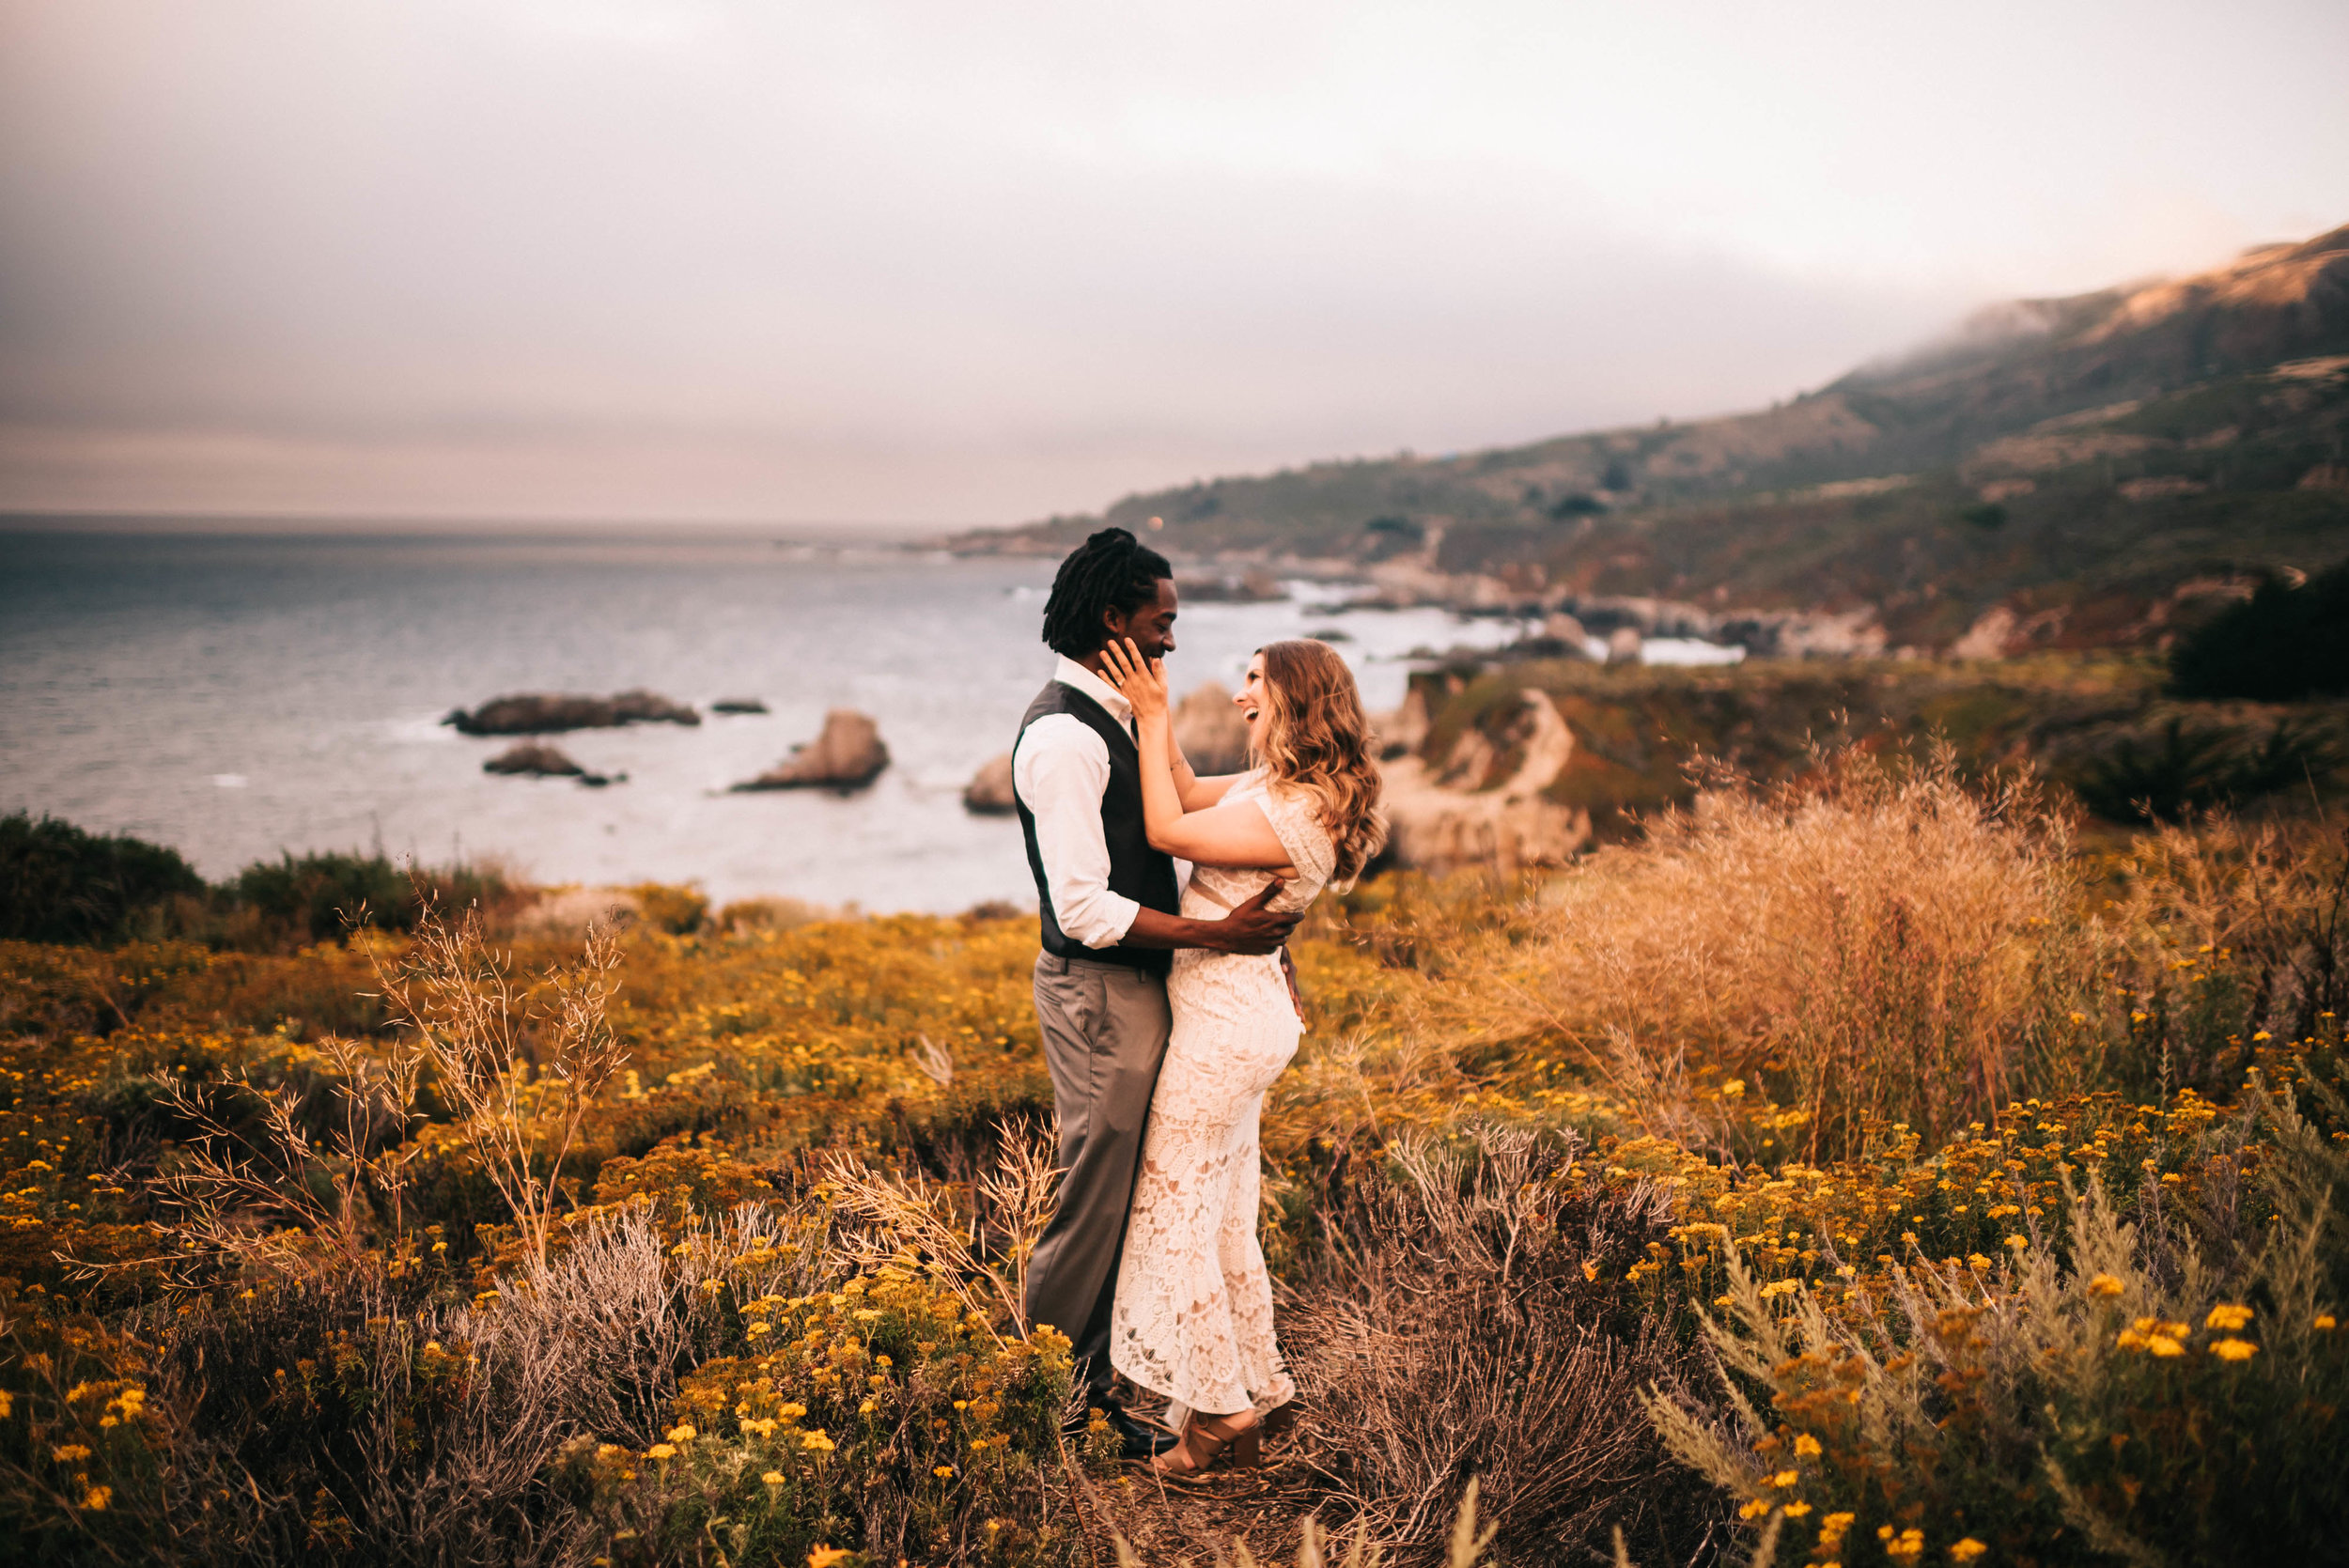 atlanta georgia big sur san francisco california bay area sf oakland wedding portrait adventure engageement nontraditional tattooed couple photographer-5.jpg